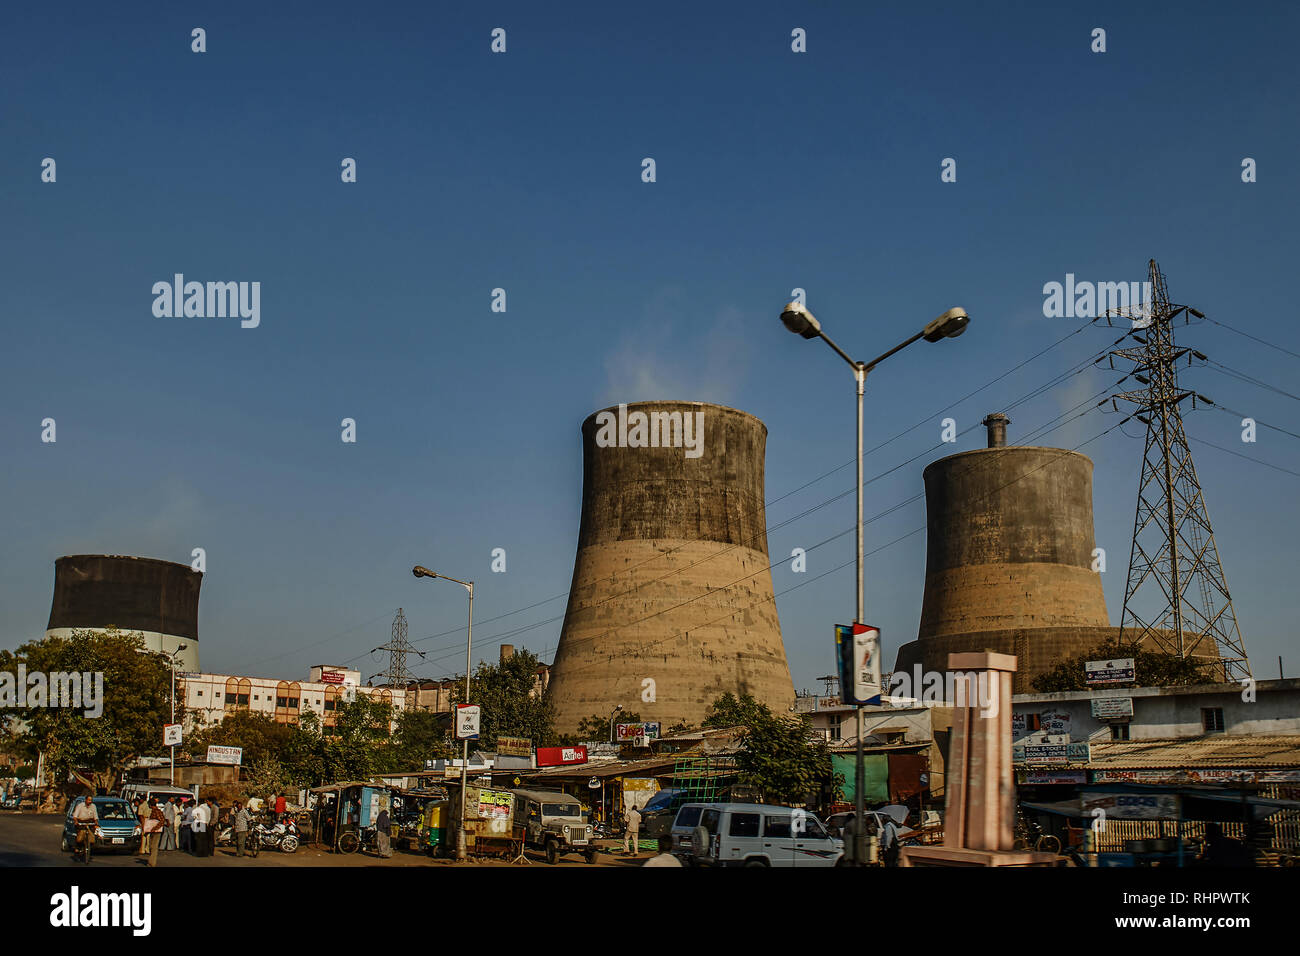 14-12- 2007 Energy-cooling  thermal power Station  Ahmedabad  Gujarat  India asia - Stock Image